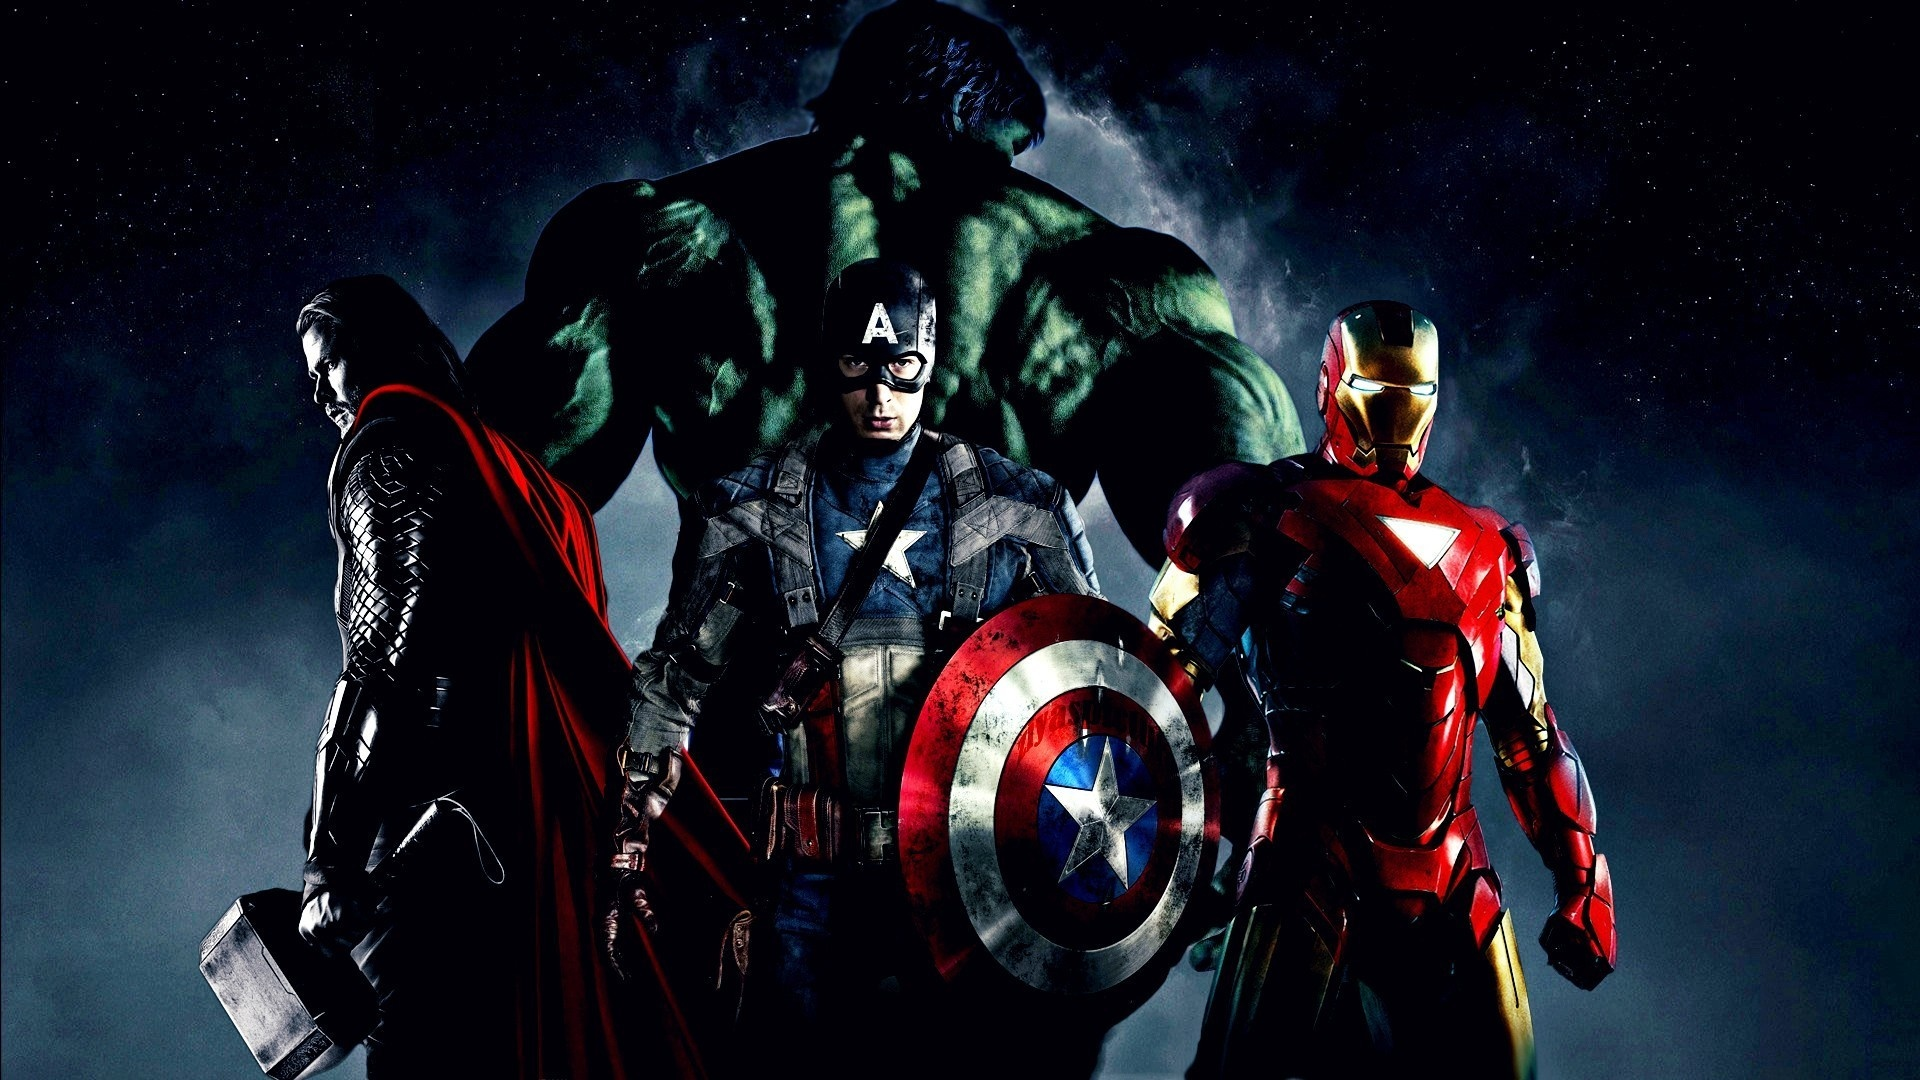 35 Best Avengers Wallpaper for Desktop 1920x1080